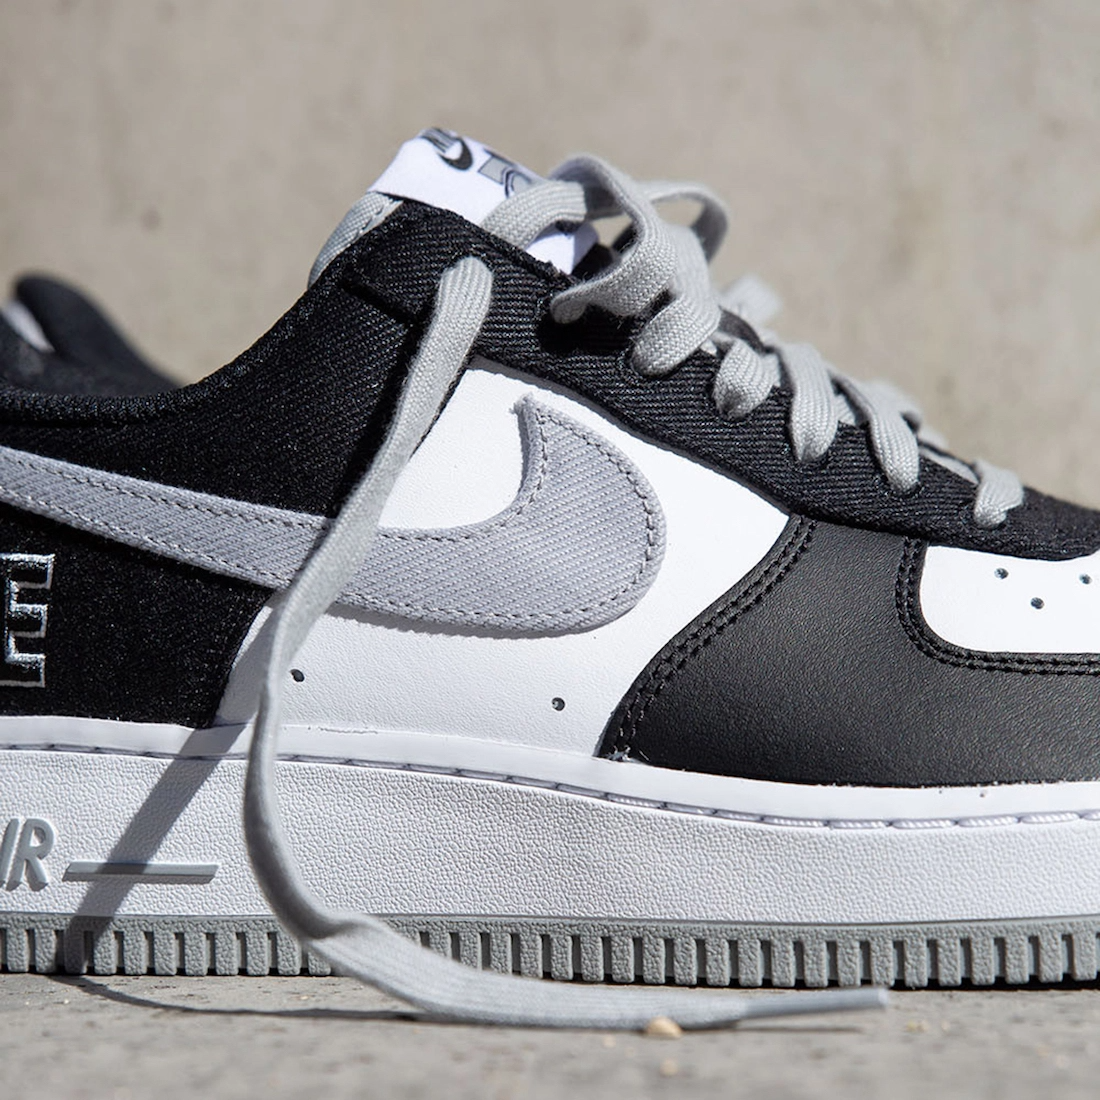 Nike-Air-Force-1-LV8-EMB-Black-Flat-Silver-CT2301-001-Release-Date-2.png